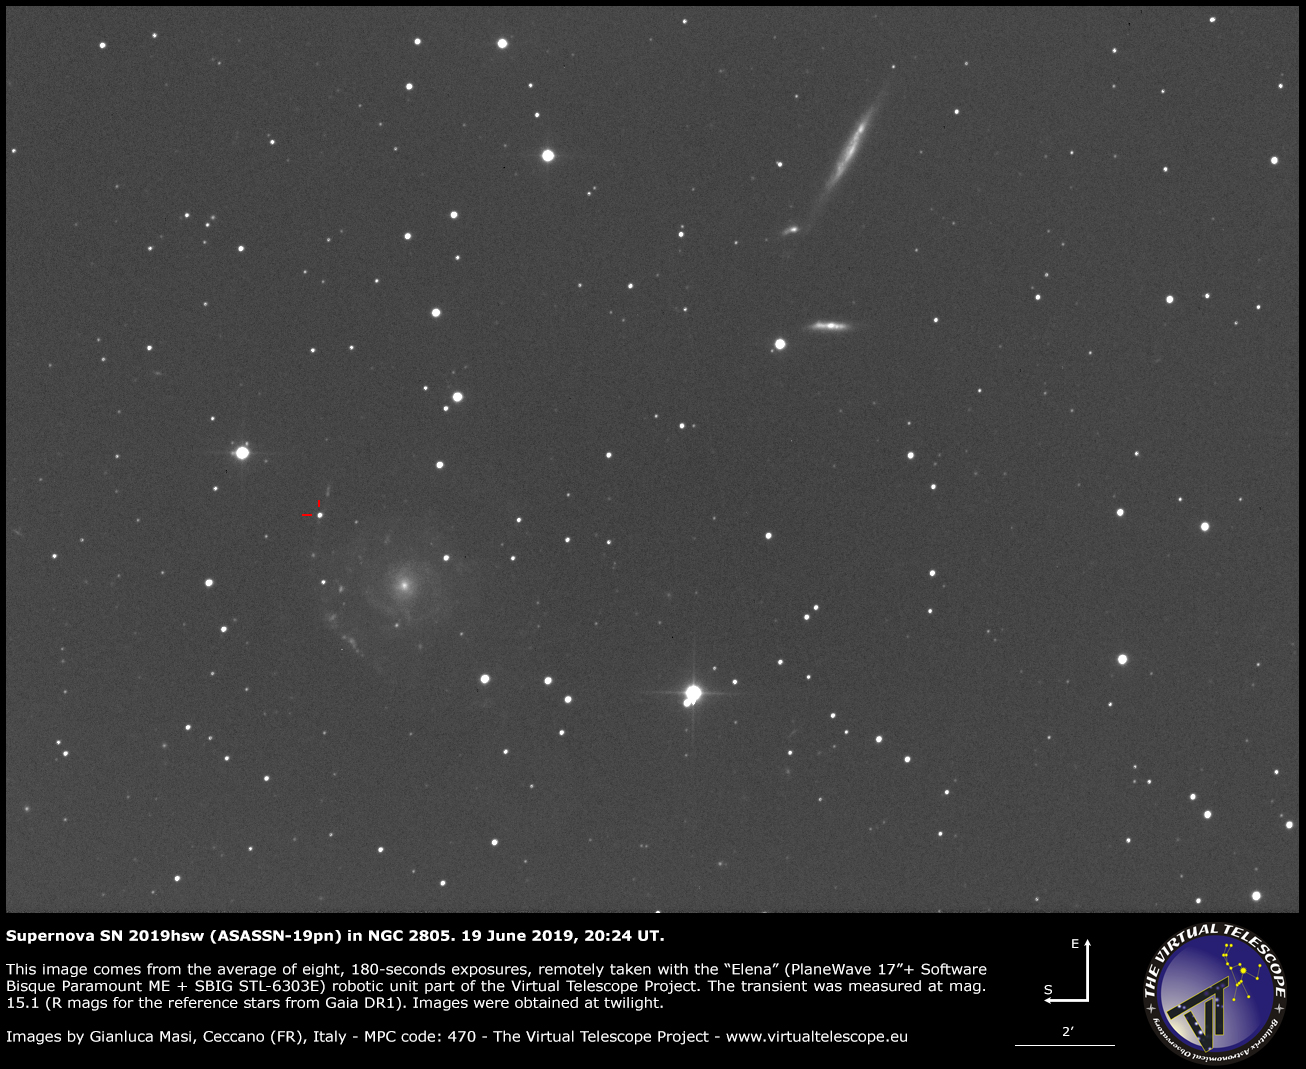 Supernova SN 2019hsw in NGC 2805: 19 June 2019